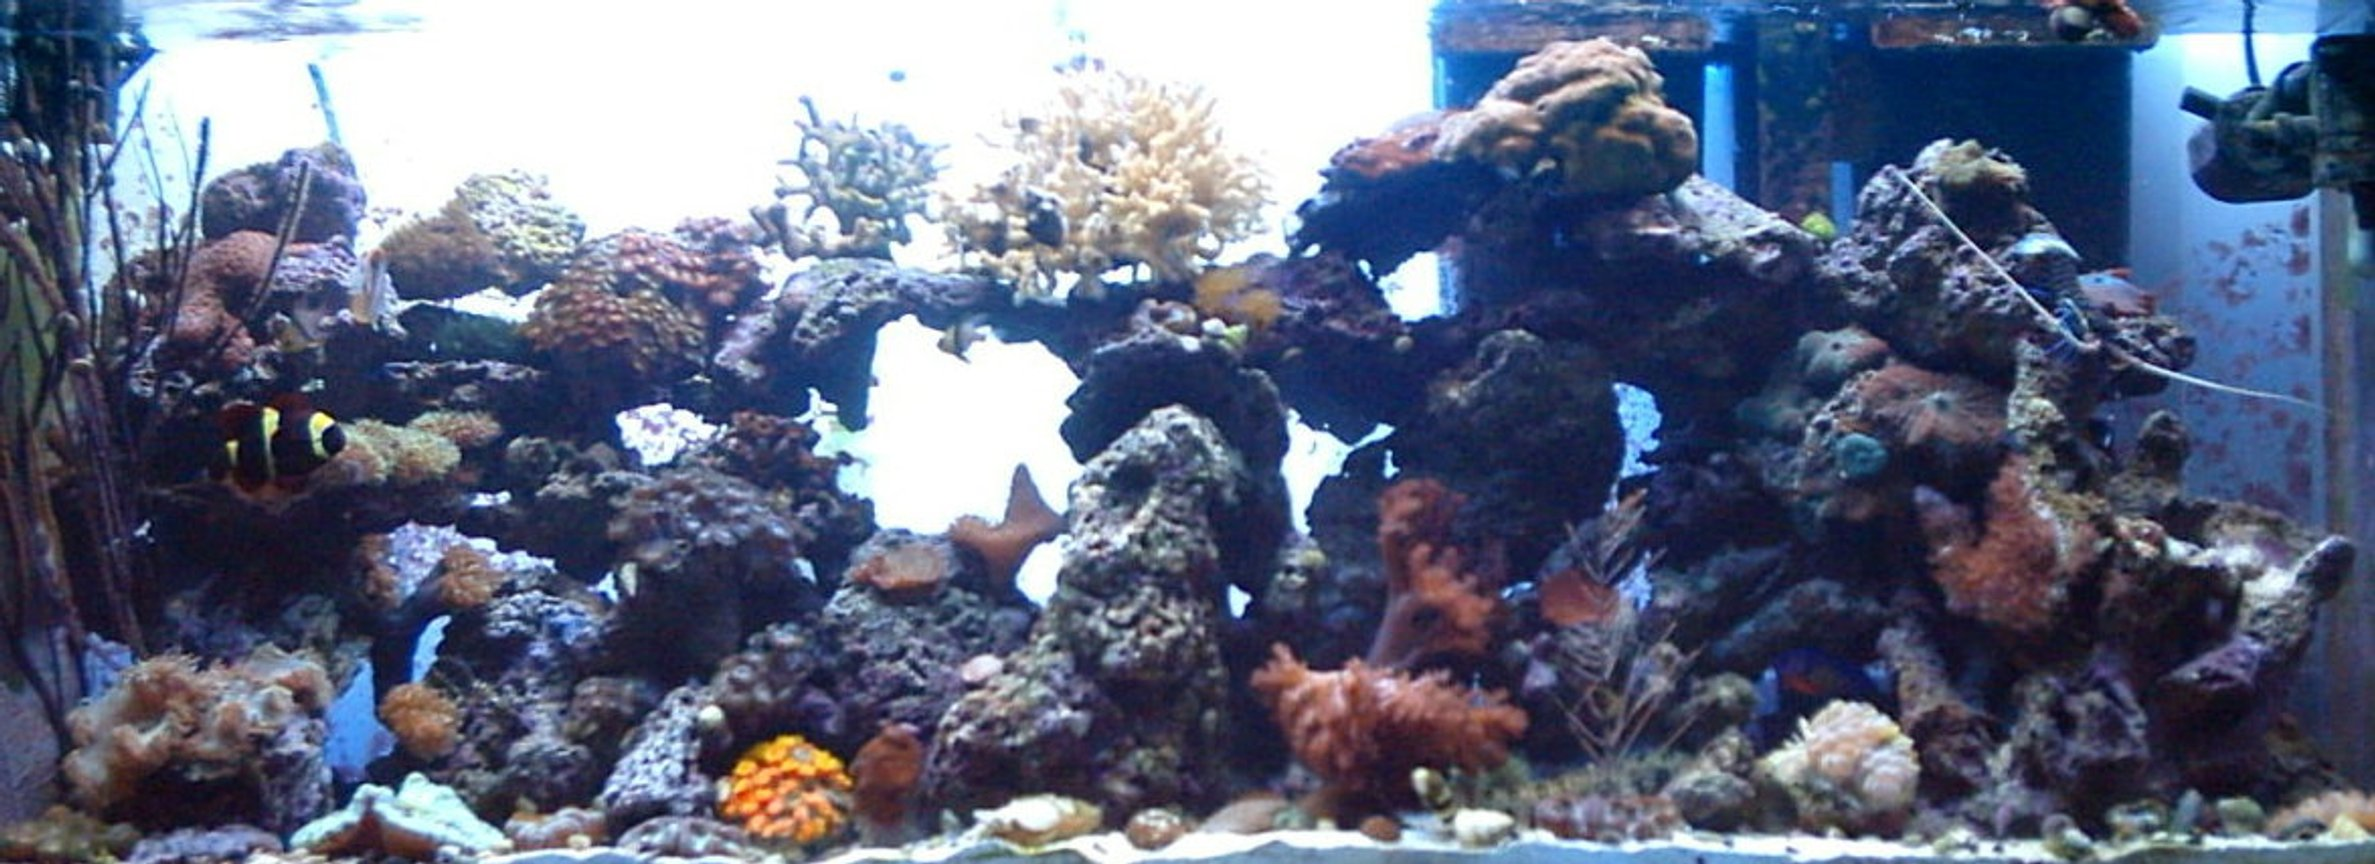 55 gallons reef tank (mostly live coral and fish) - 01/22/06 added tubastrea and elegance coral with an open brain